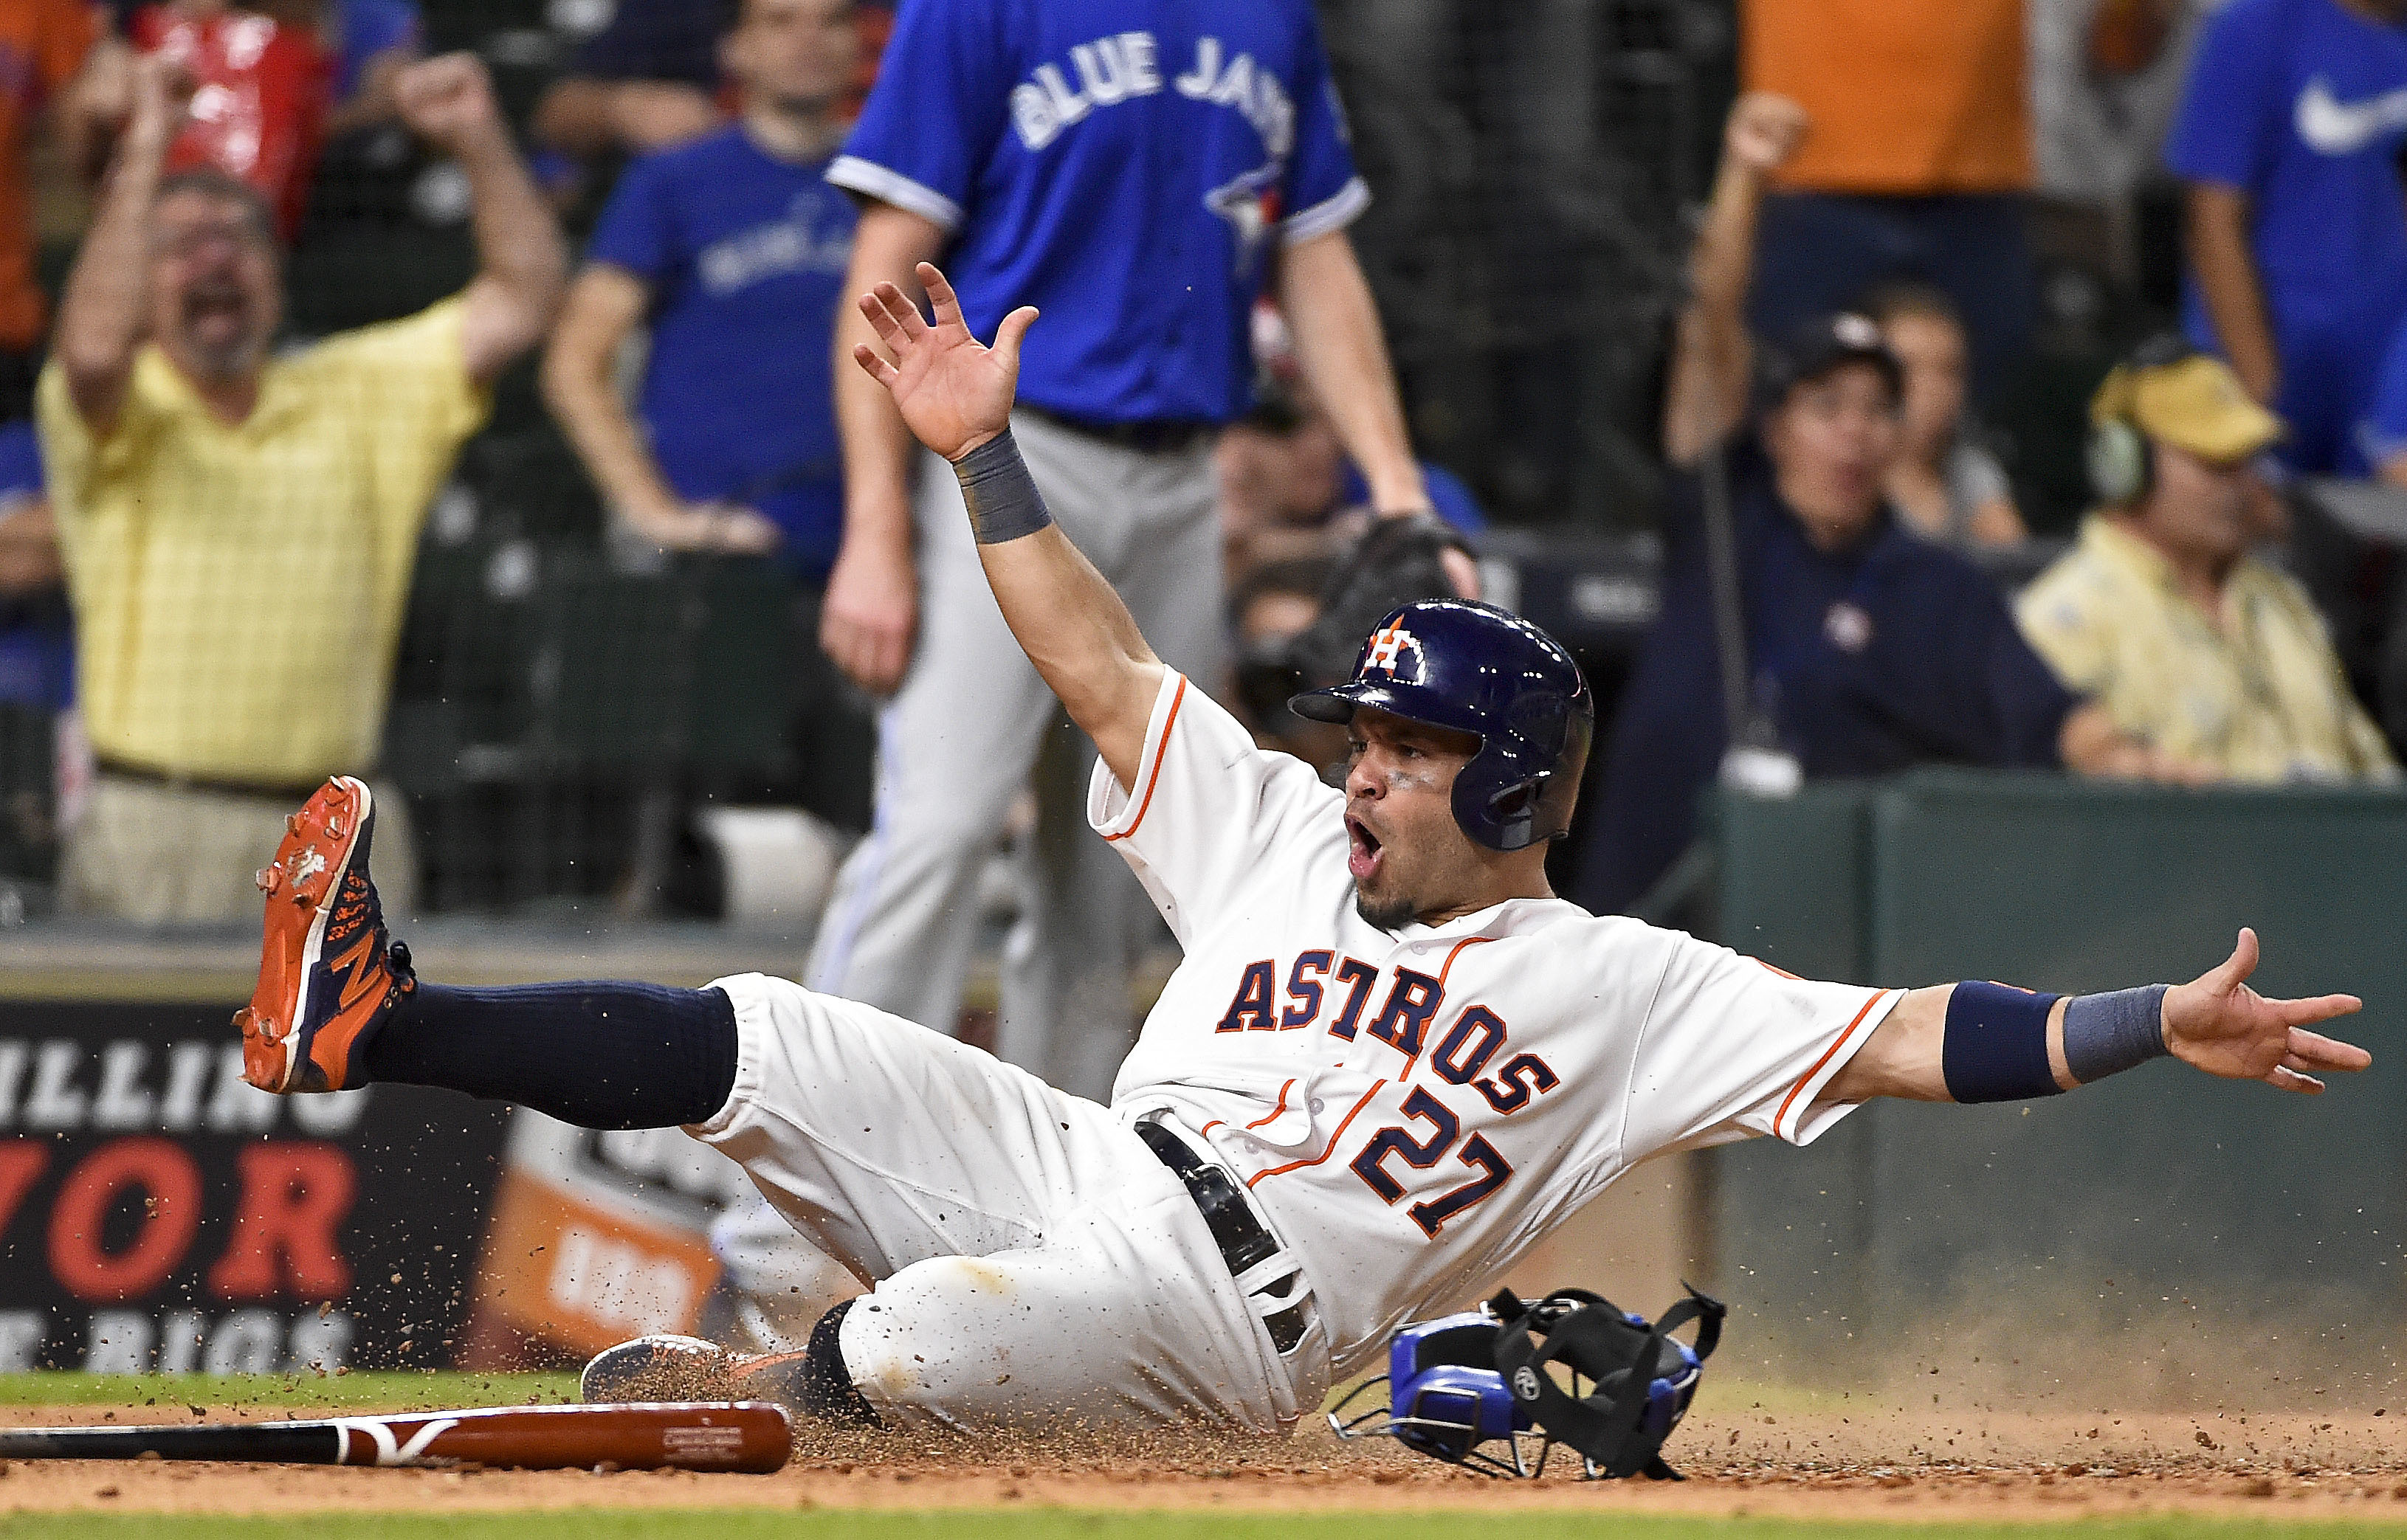 Houston Astros' Jose Altuve scores the winning run on Carlos Correa's single in the 14th inning of a baseball game against the Toronto Blue Jays, Monday, Aug. 1, 2016, in Houston. Houston won 2-1. (AP Photo/Eric Christian Smith)